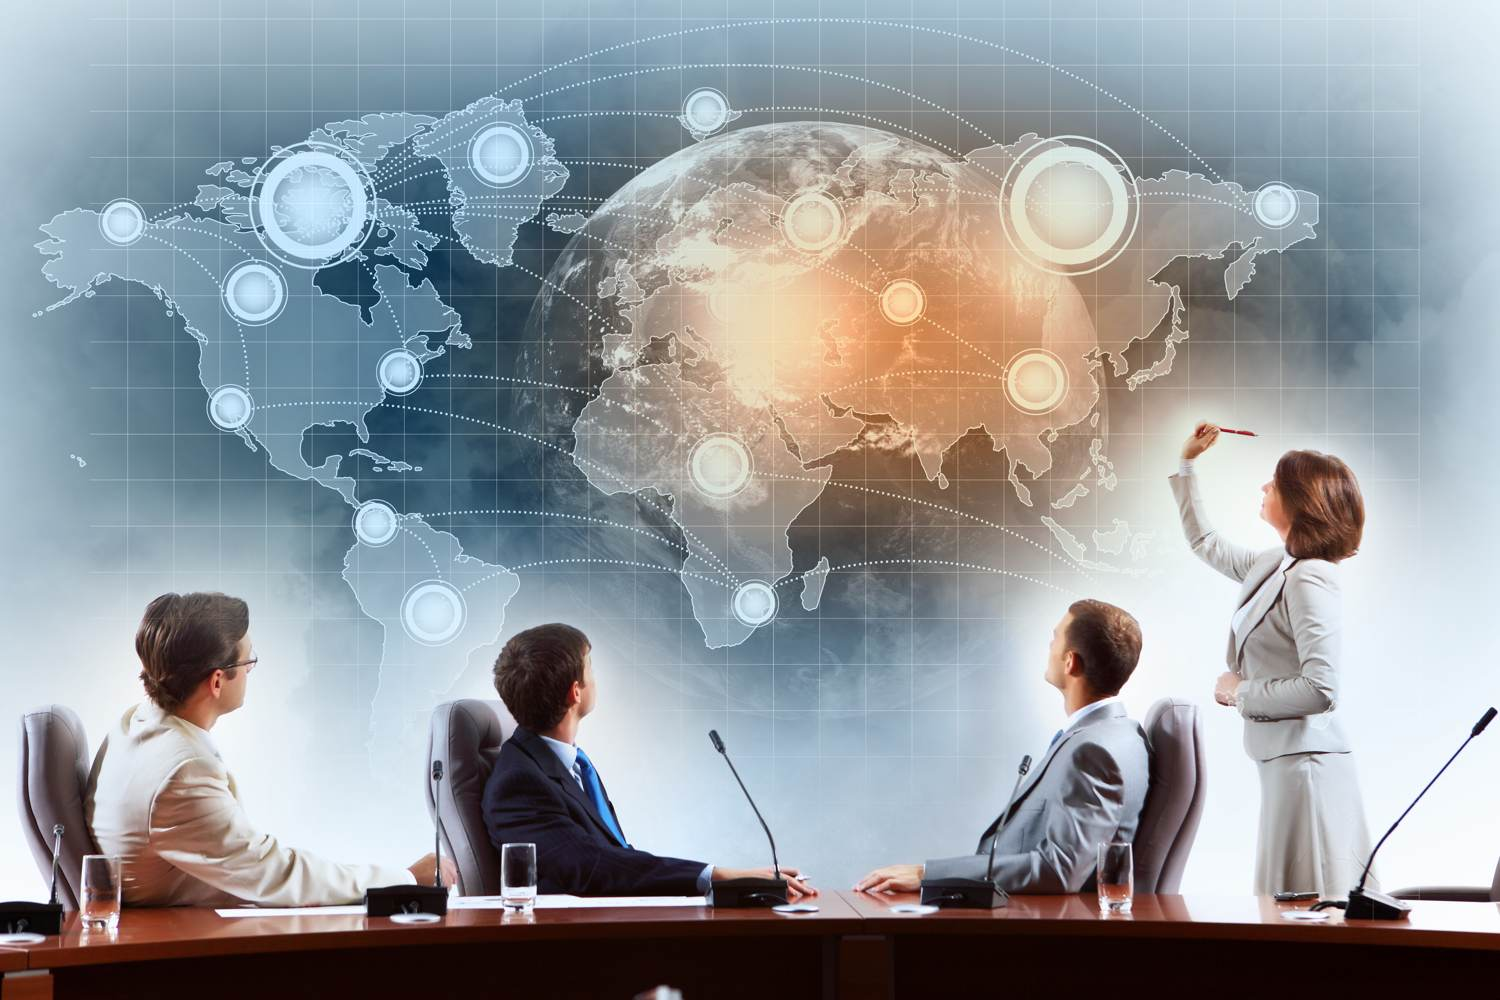 Businesspeople thinking of going international - Concept of international business